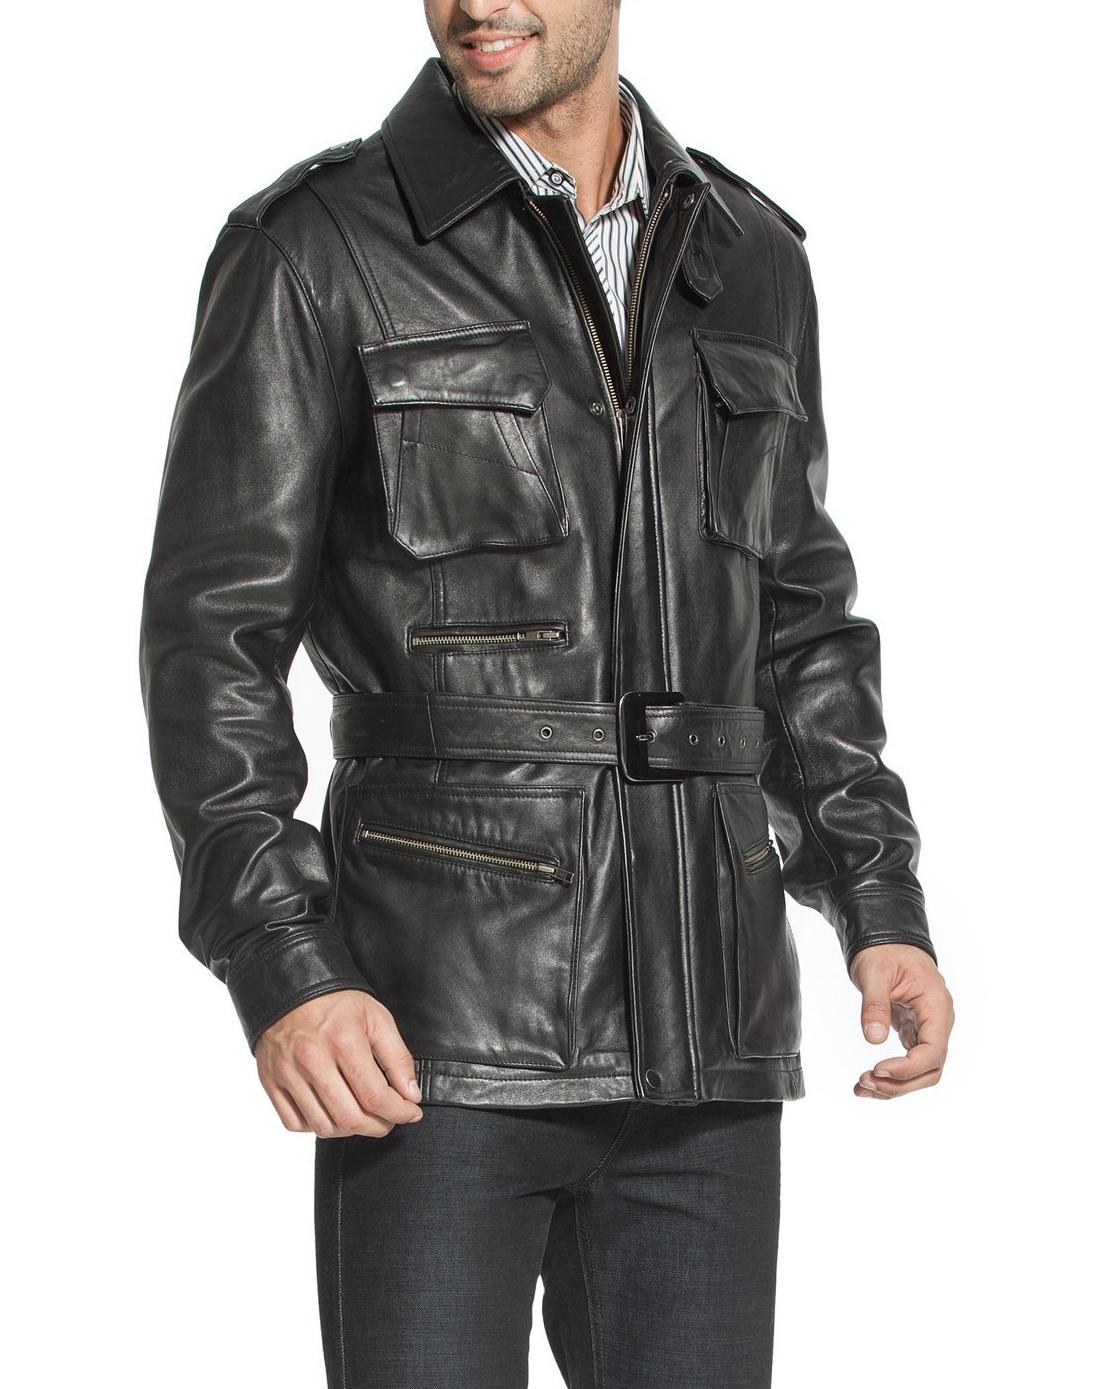 Collection Leather Trench Coat Men Pictures - Reikian